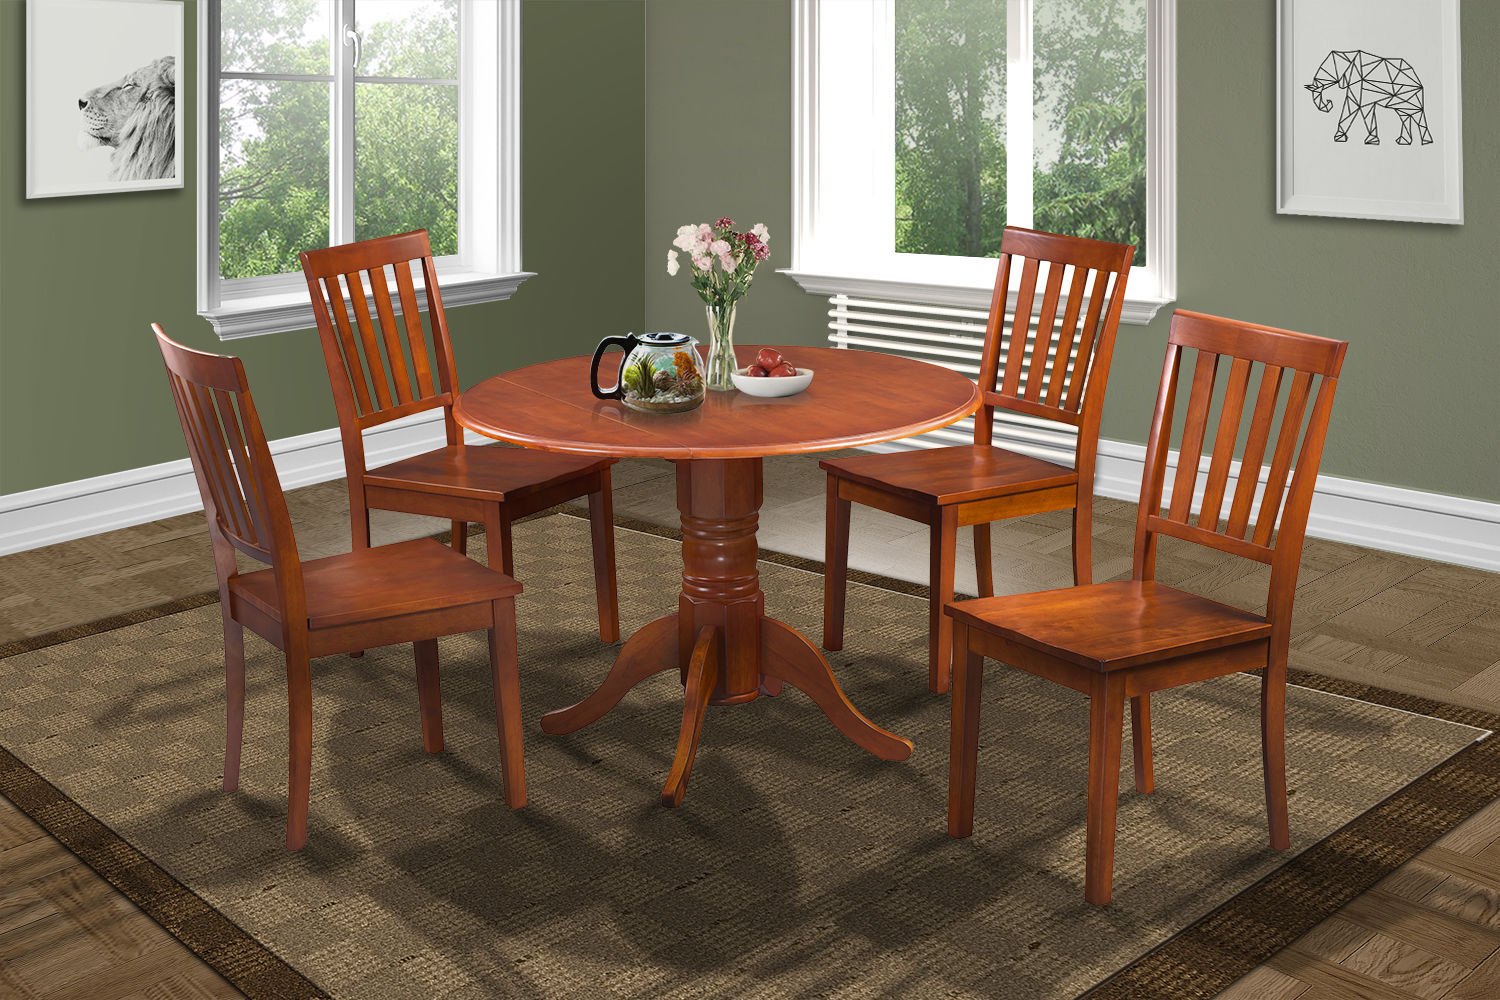 SET OF 4 MOCHA KITCHEN DINING CHAIRS WITH WOODEN SEAT IN SADDLE BROWN